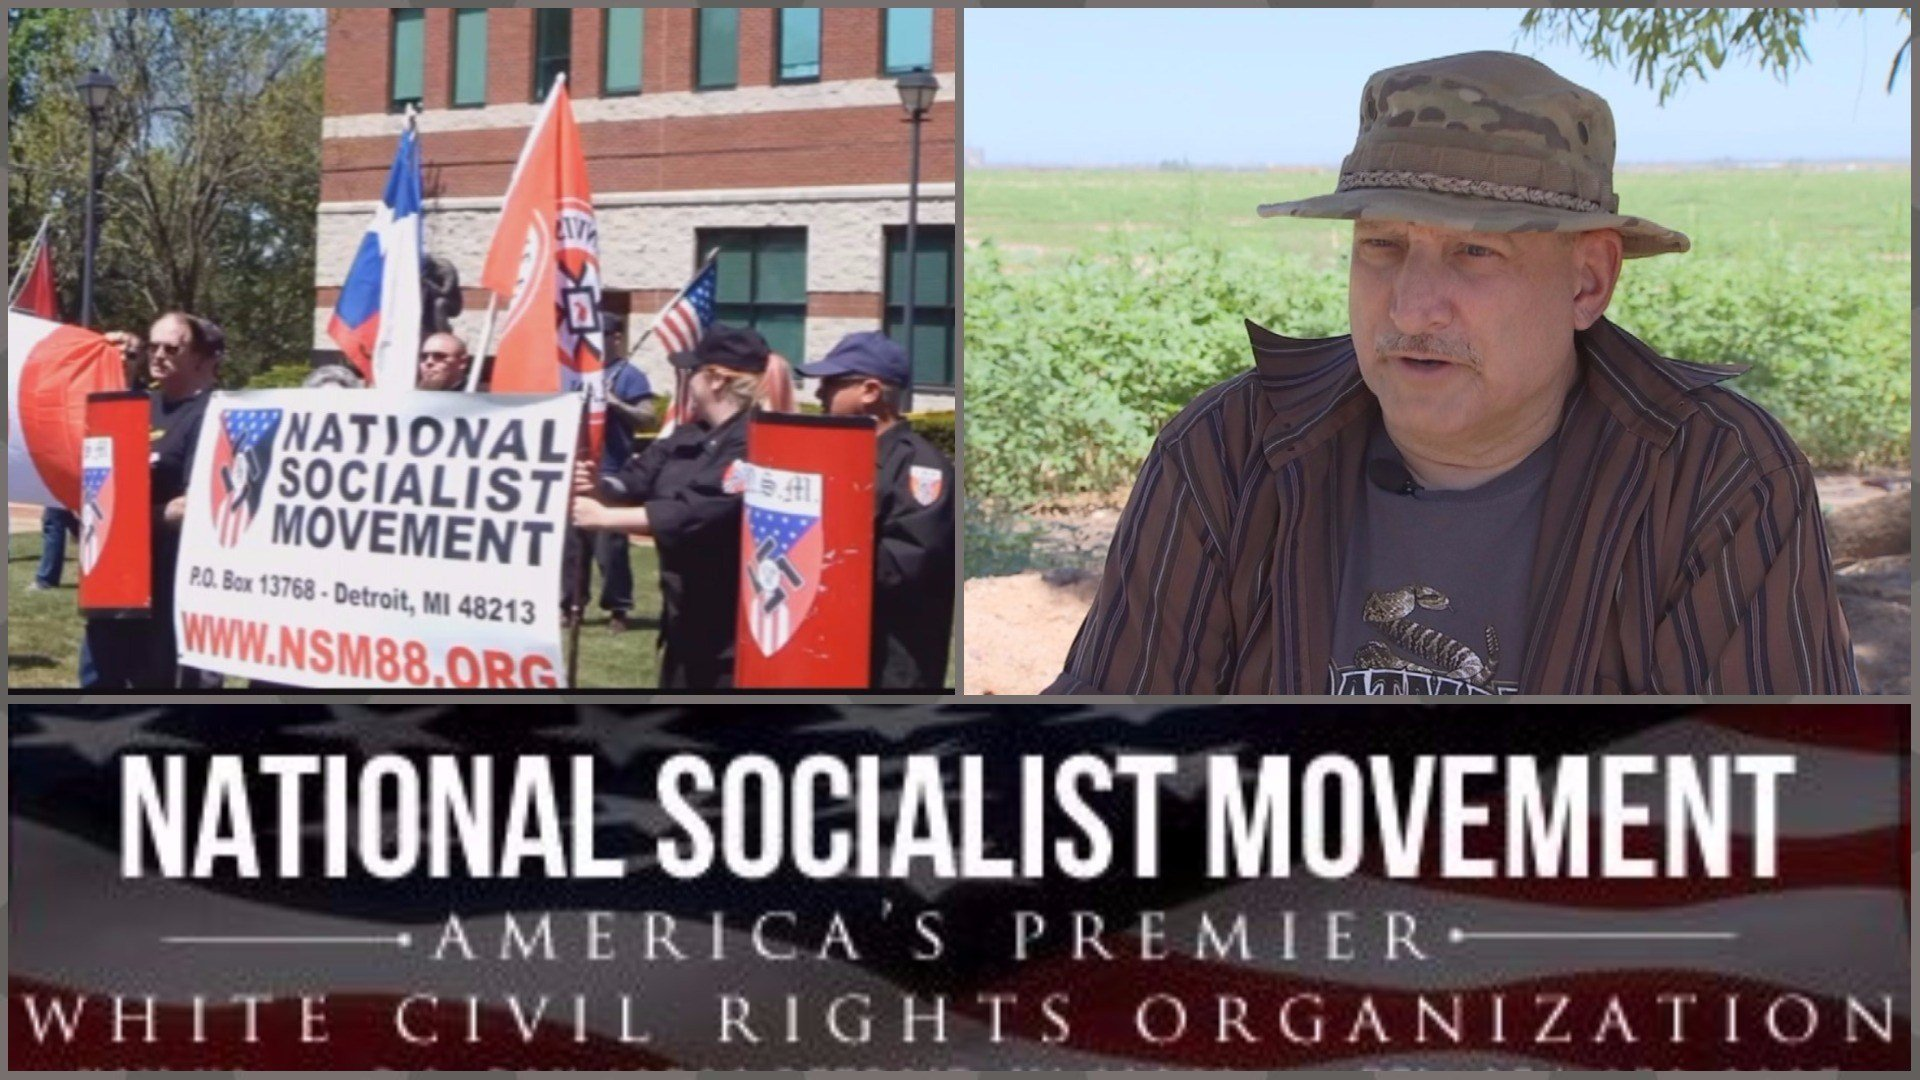 Harry Hughes is the Southwest regional leader of the National Socialist Movement. (Source: 3TV/CBS 5 and NSM88.org0